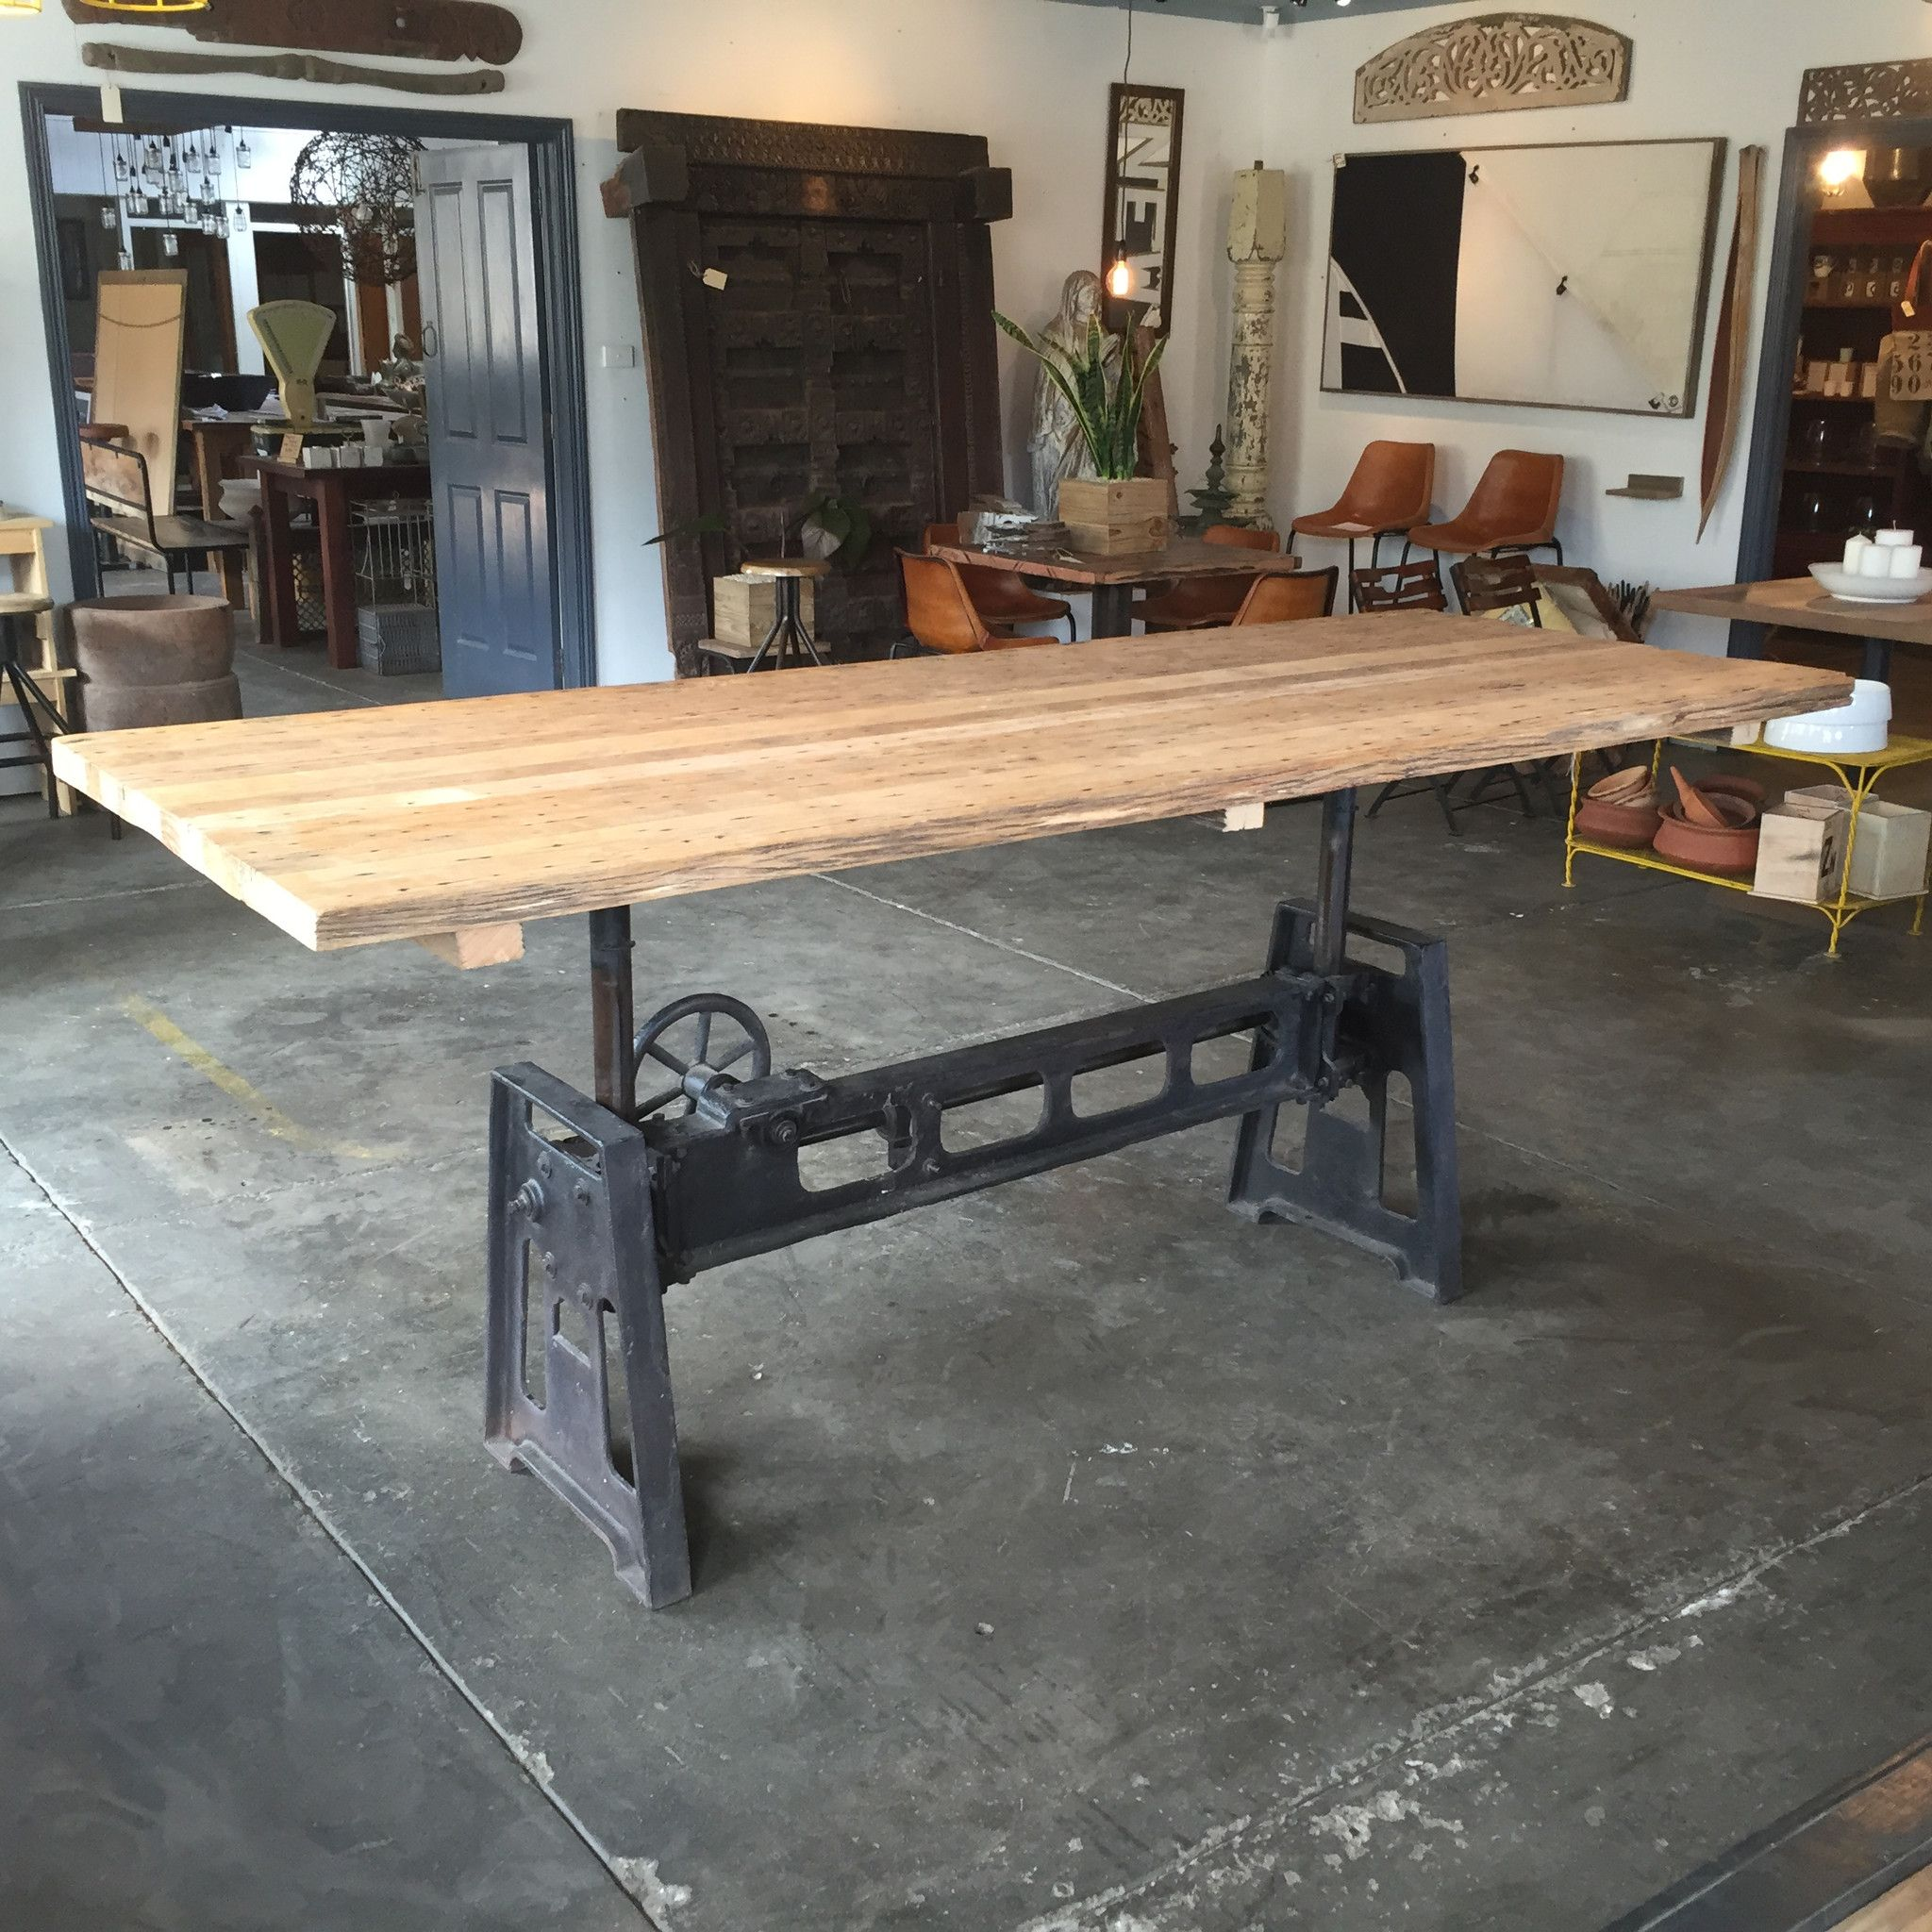 Cast Iron Table base, adjustable in height, with Recycled